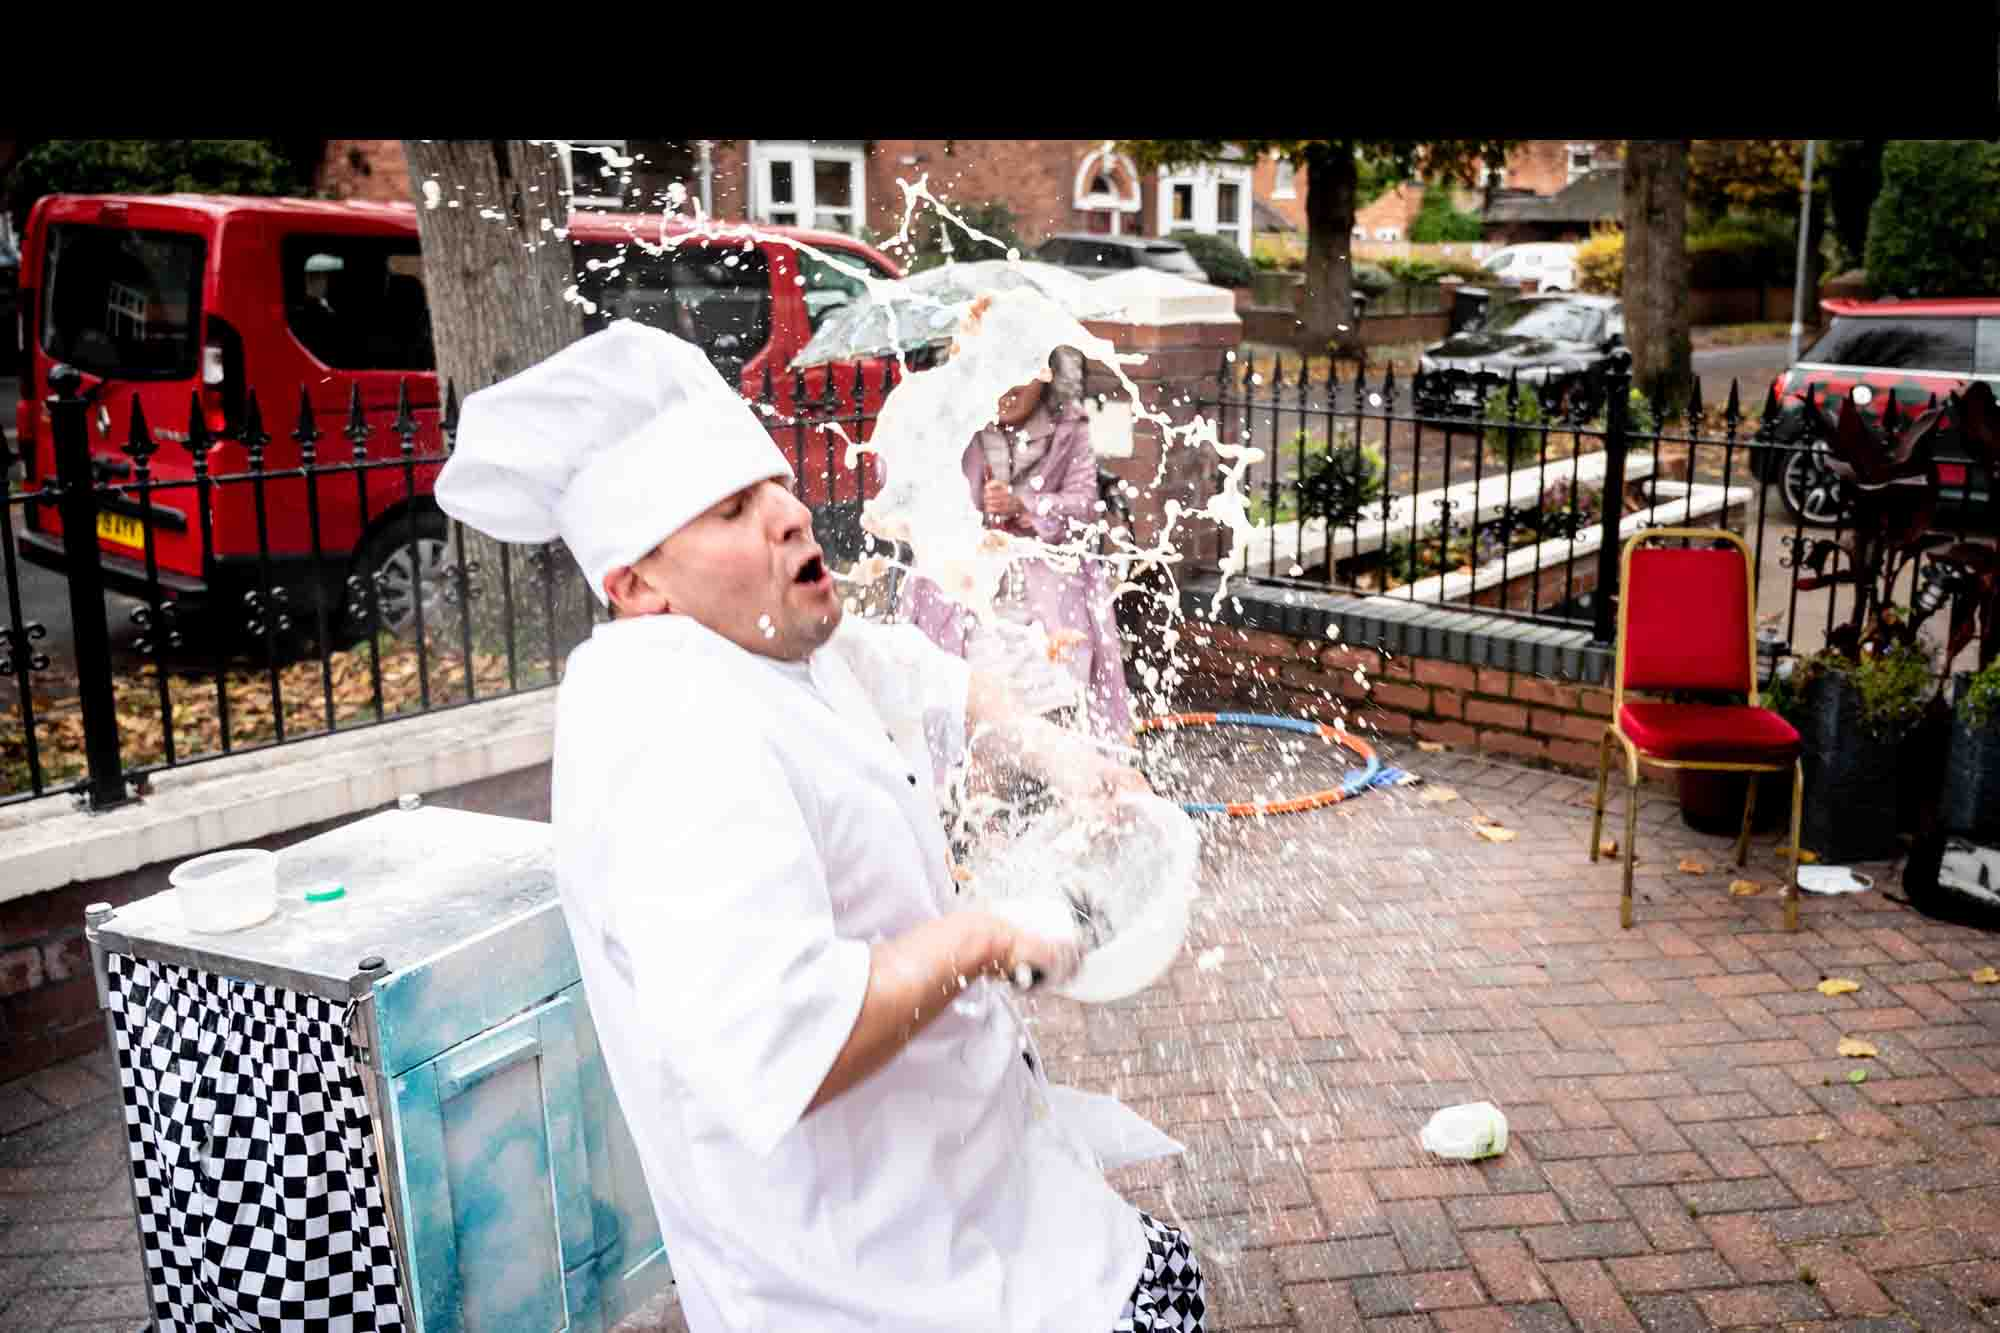 a chef covered in flour